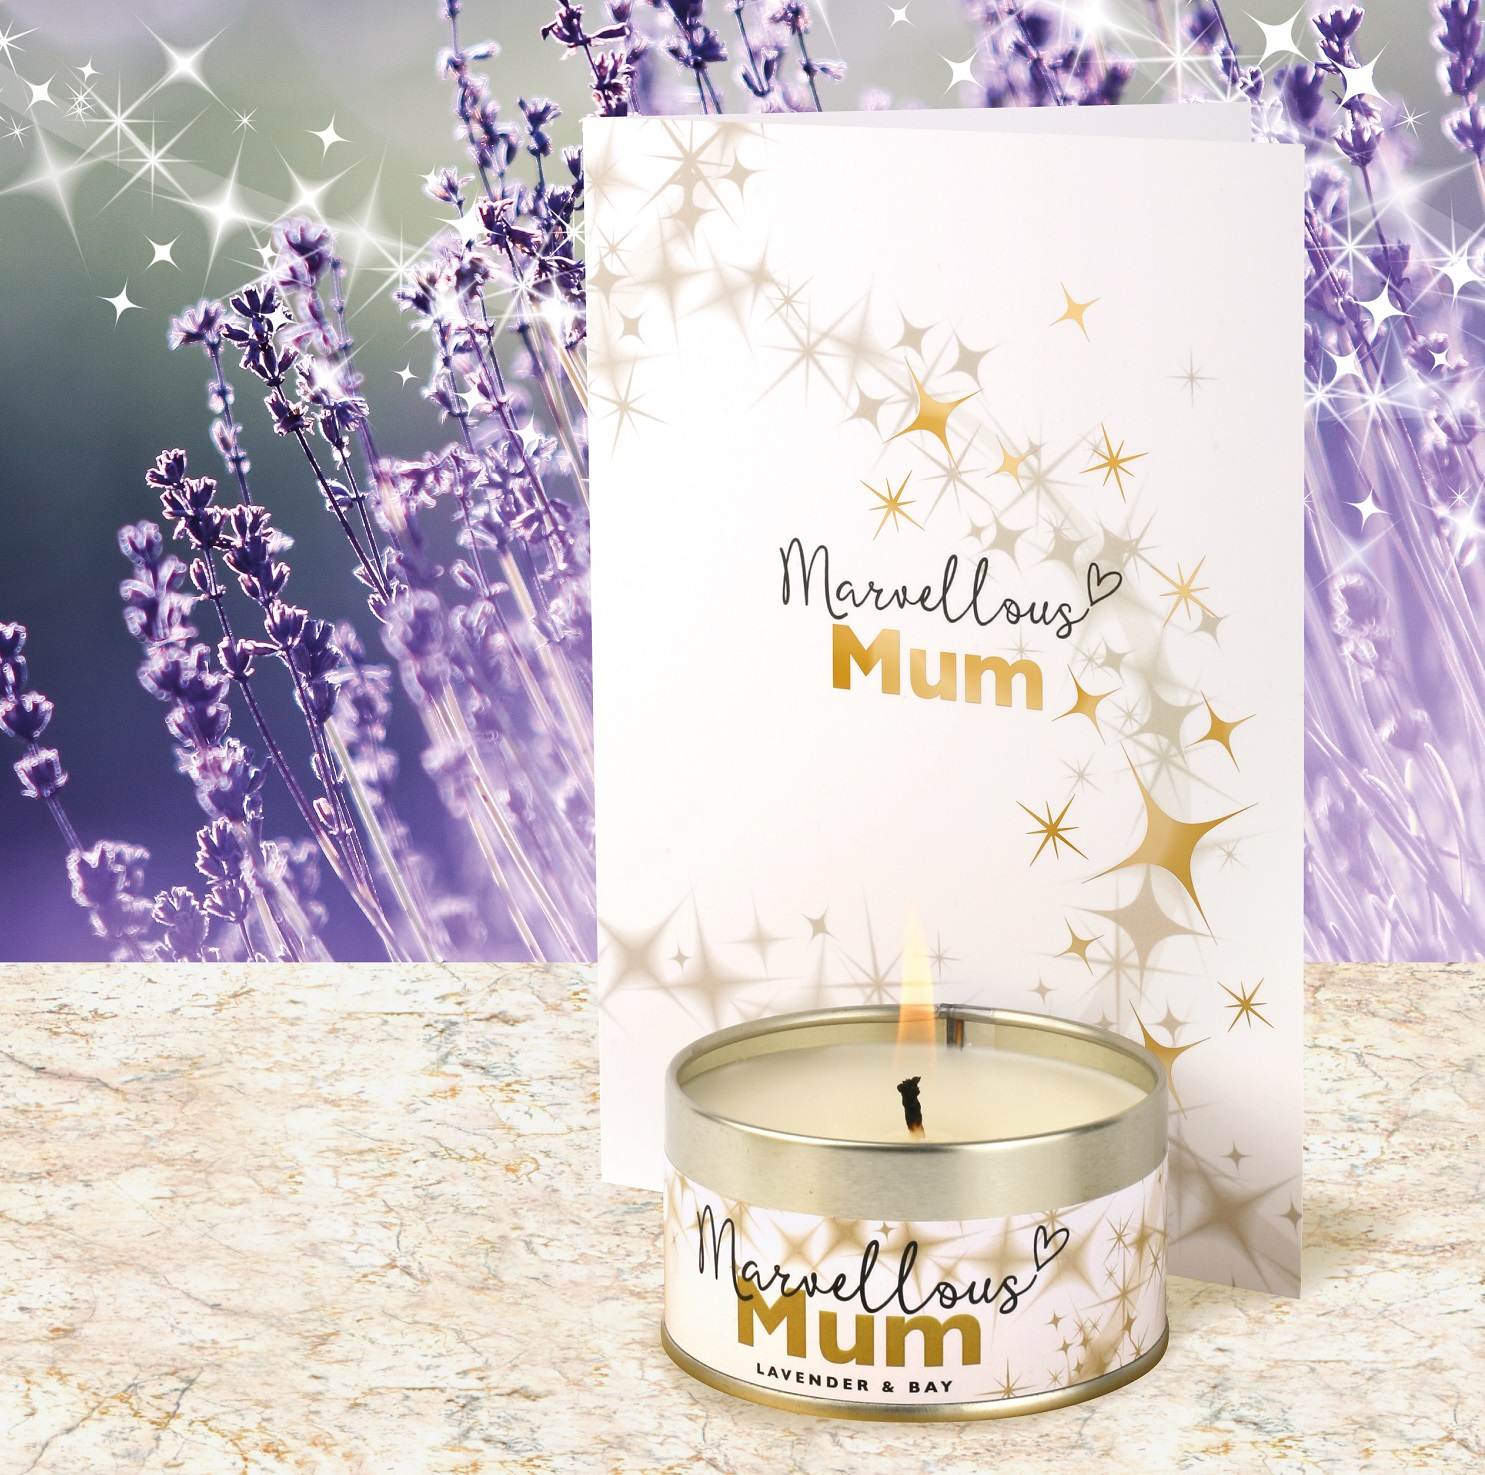 Marvellous Mum Card and Candle in a Lavender & Bay fragrance